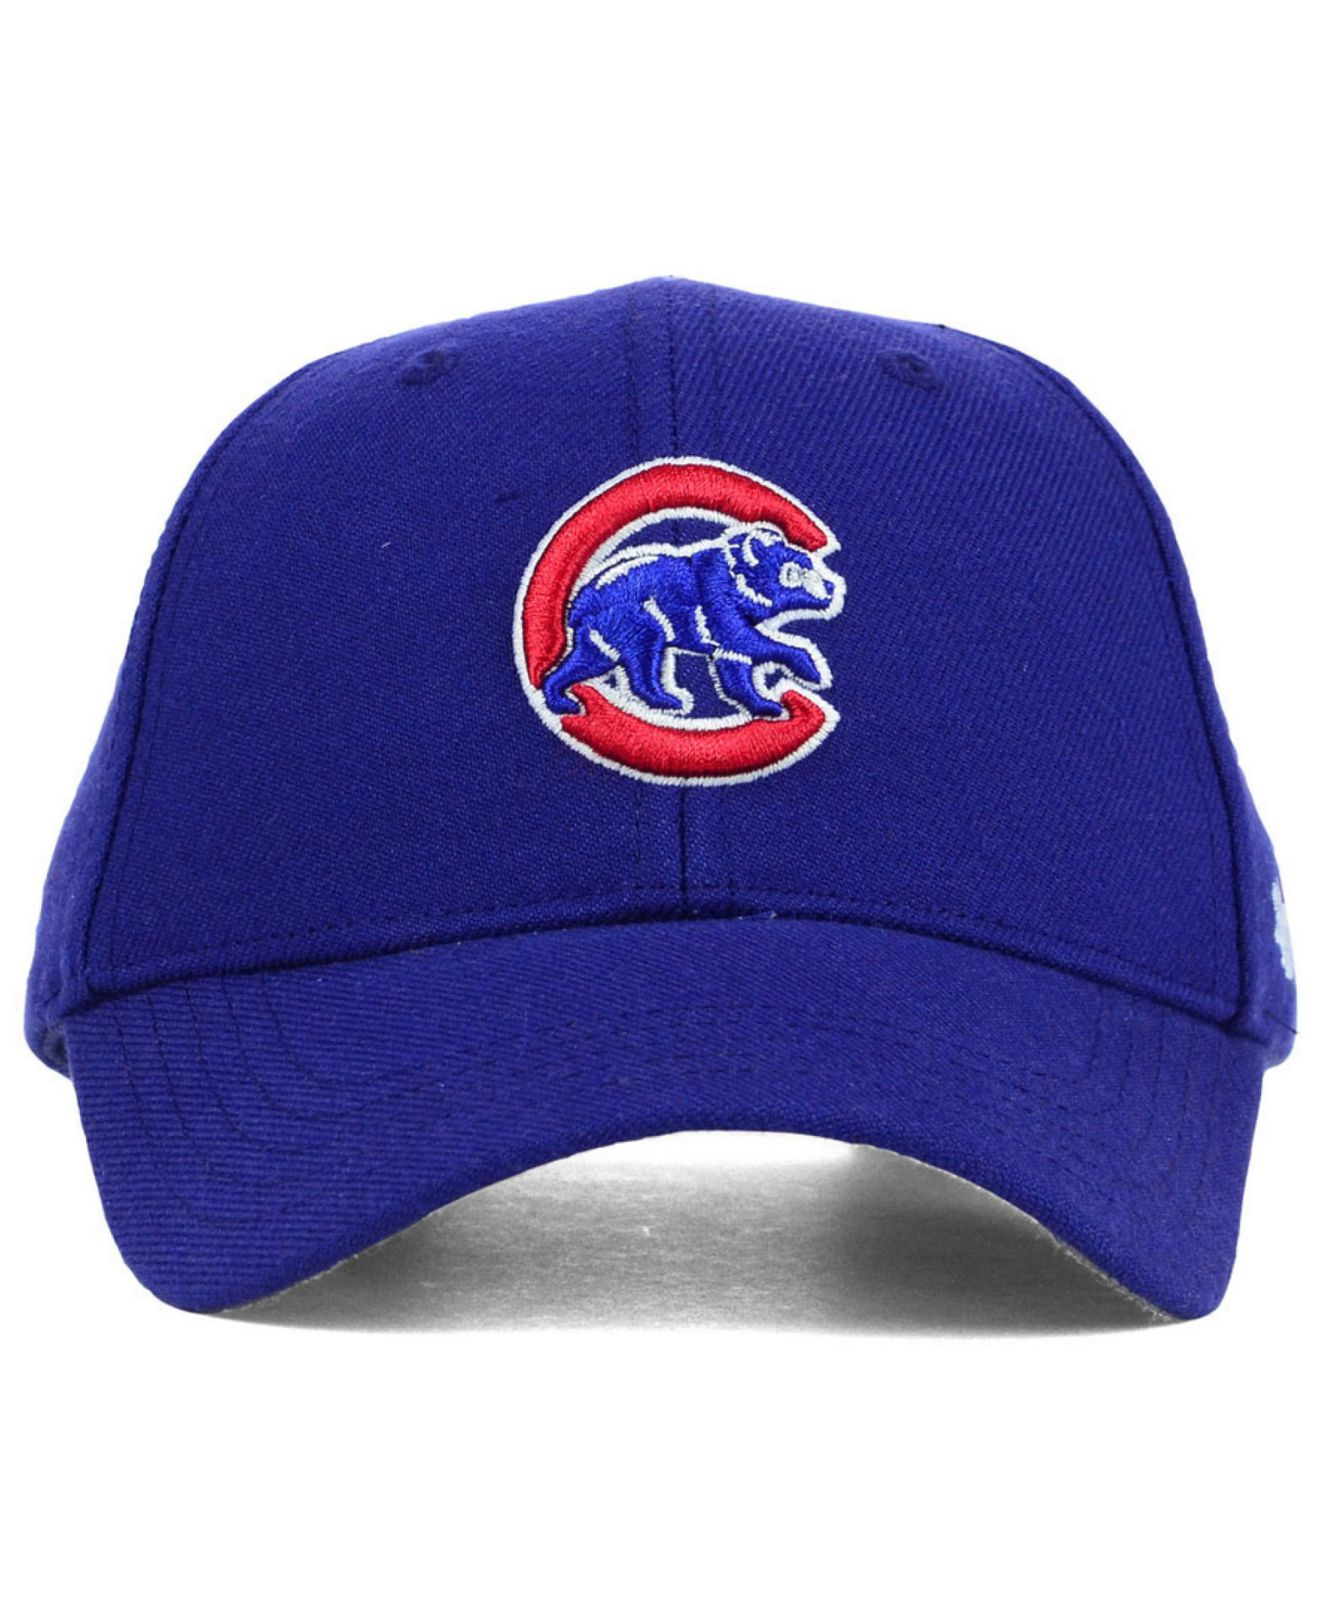 38f603f22bb Lyst - 47 Brand Chicago Cubs Babies  Cap Or Toddlers  Cap in Blue